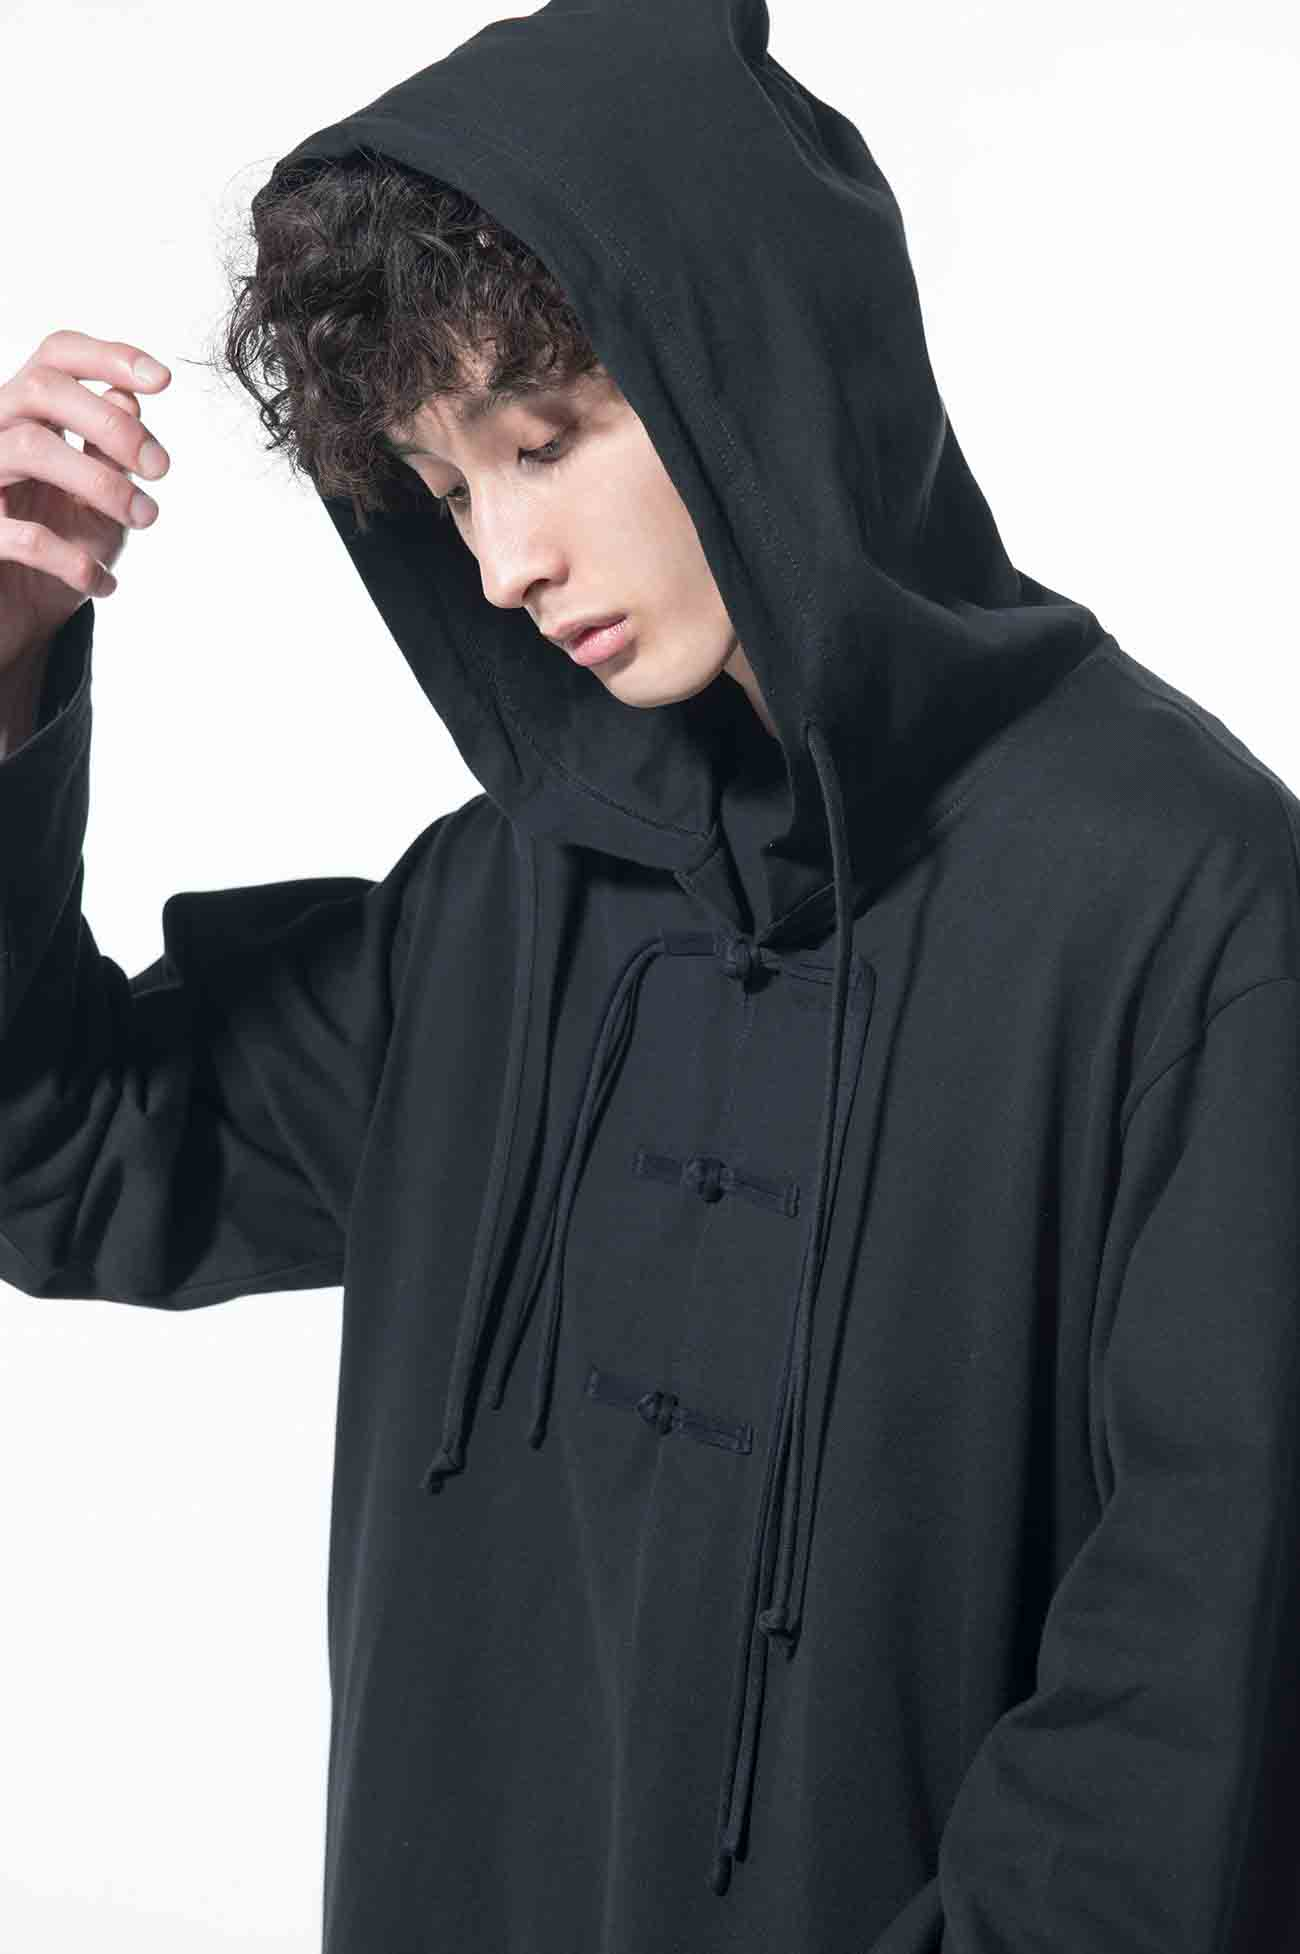 40/2 Jersey China Big Hoodie pullover